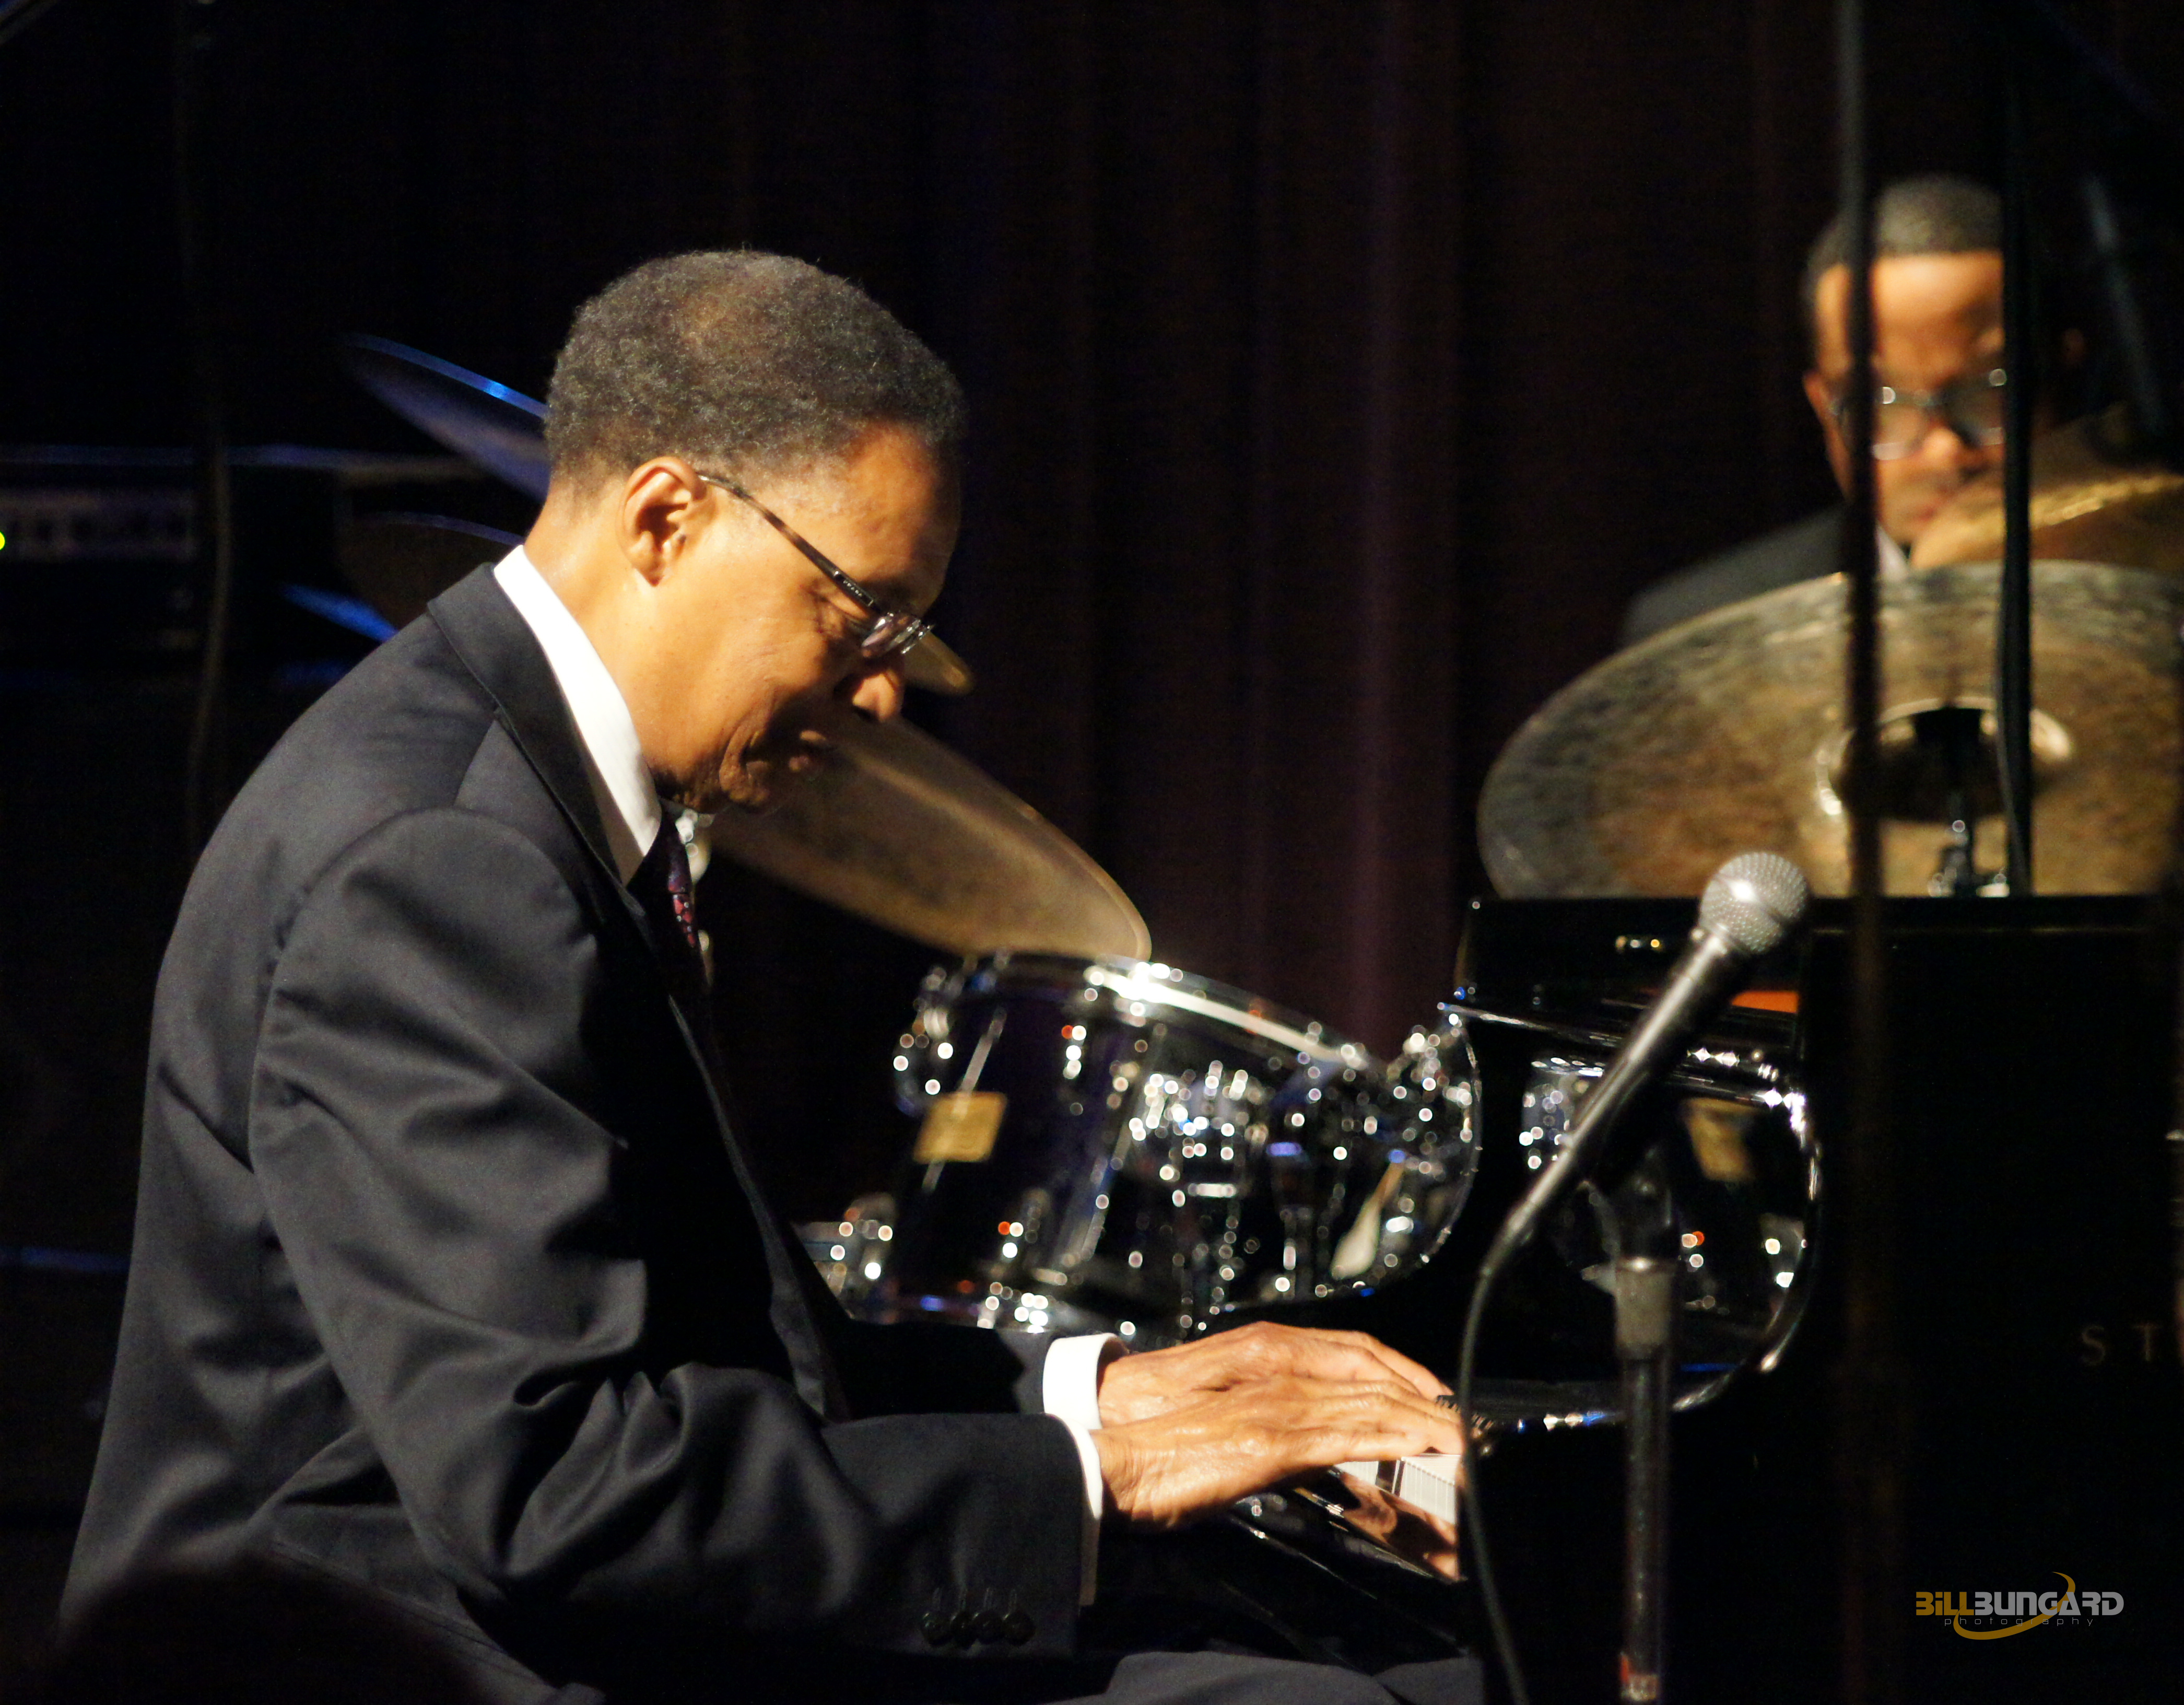 Ramsey Lewis at Jazz Alley (Photo by Bill Bungard)